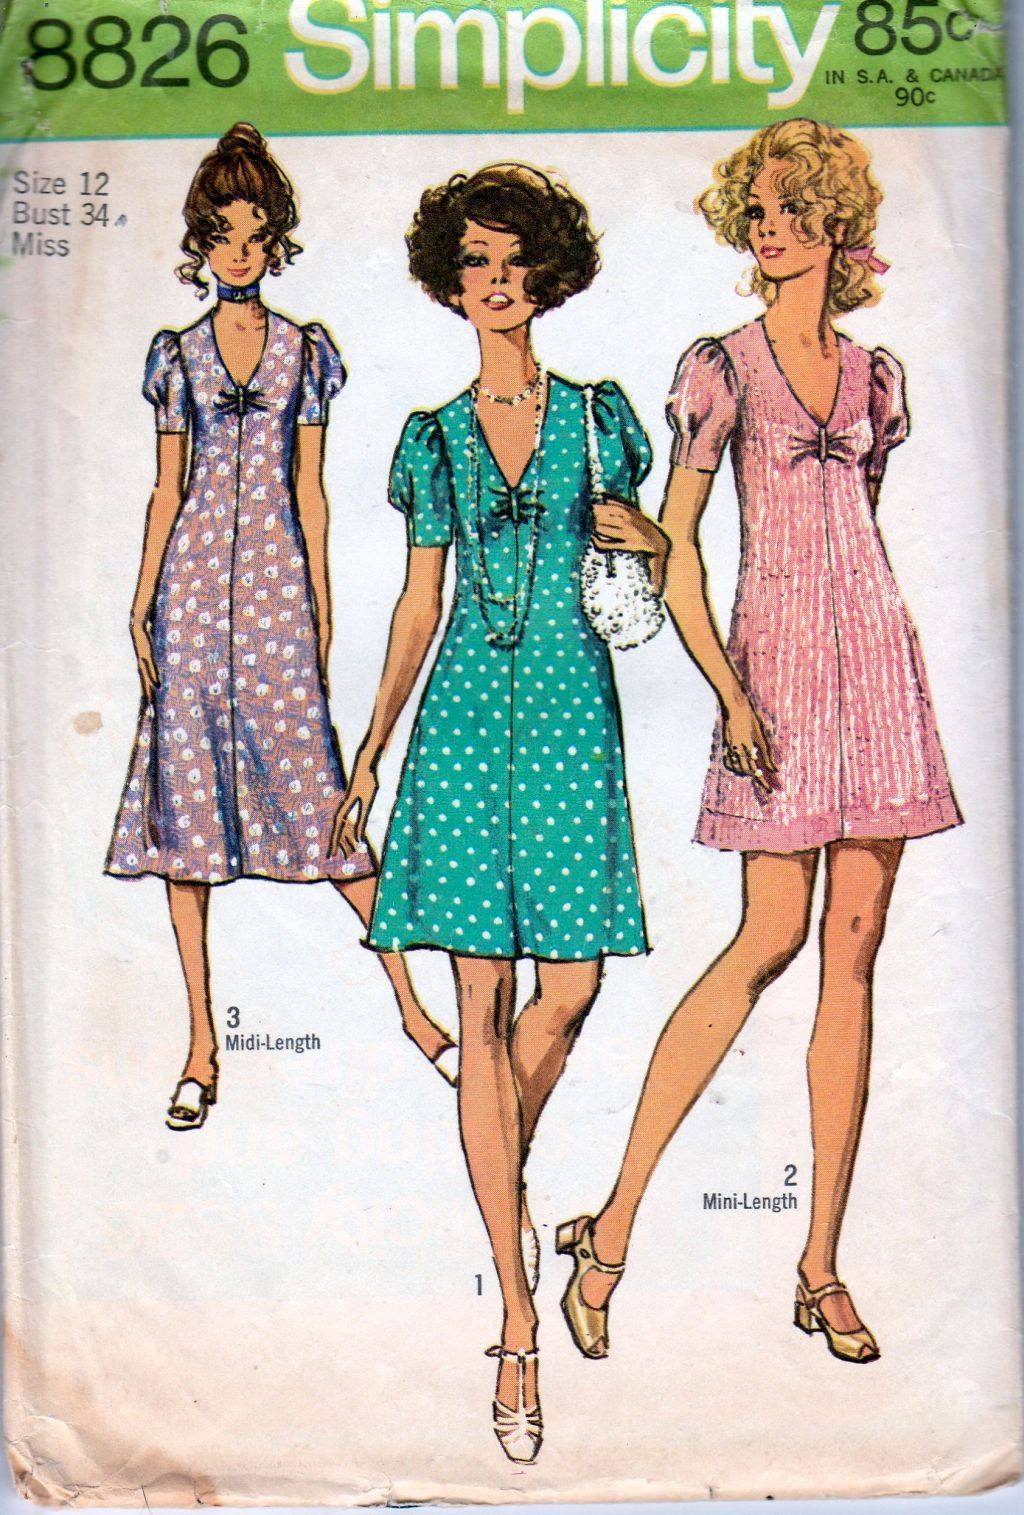 Simplicity 8826 Ladies Mini Midi Dress Vintage Sewing Pattern 1970's - VintageStitching - Vintage Sewing Patterns